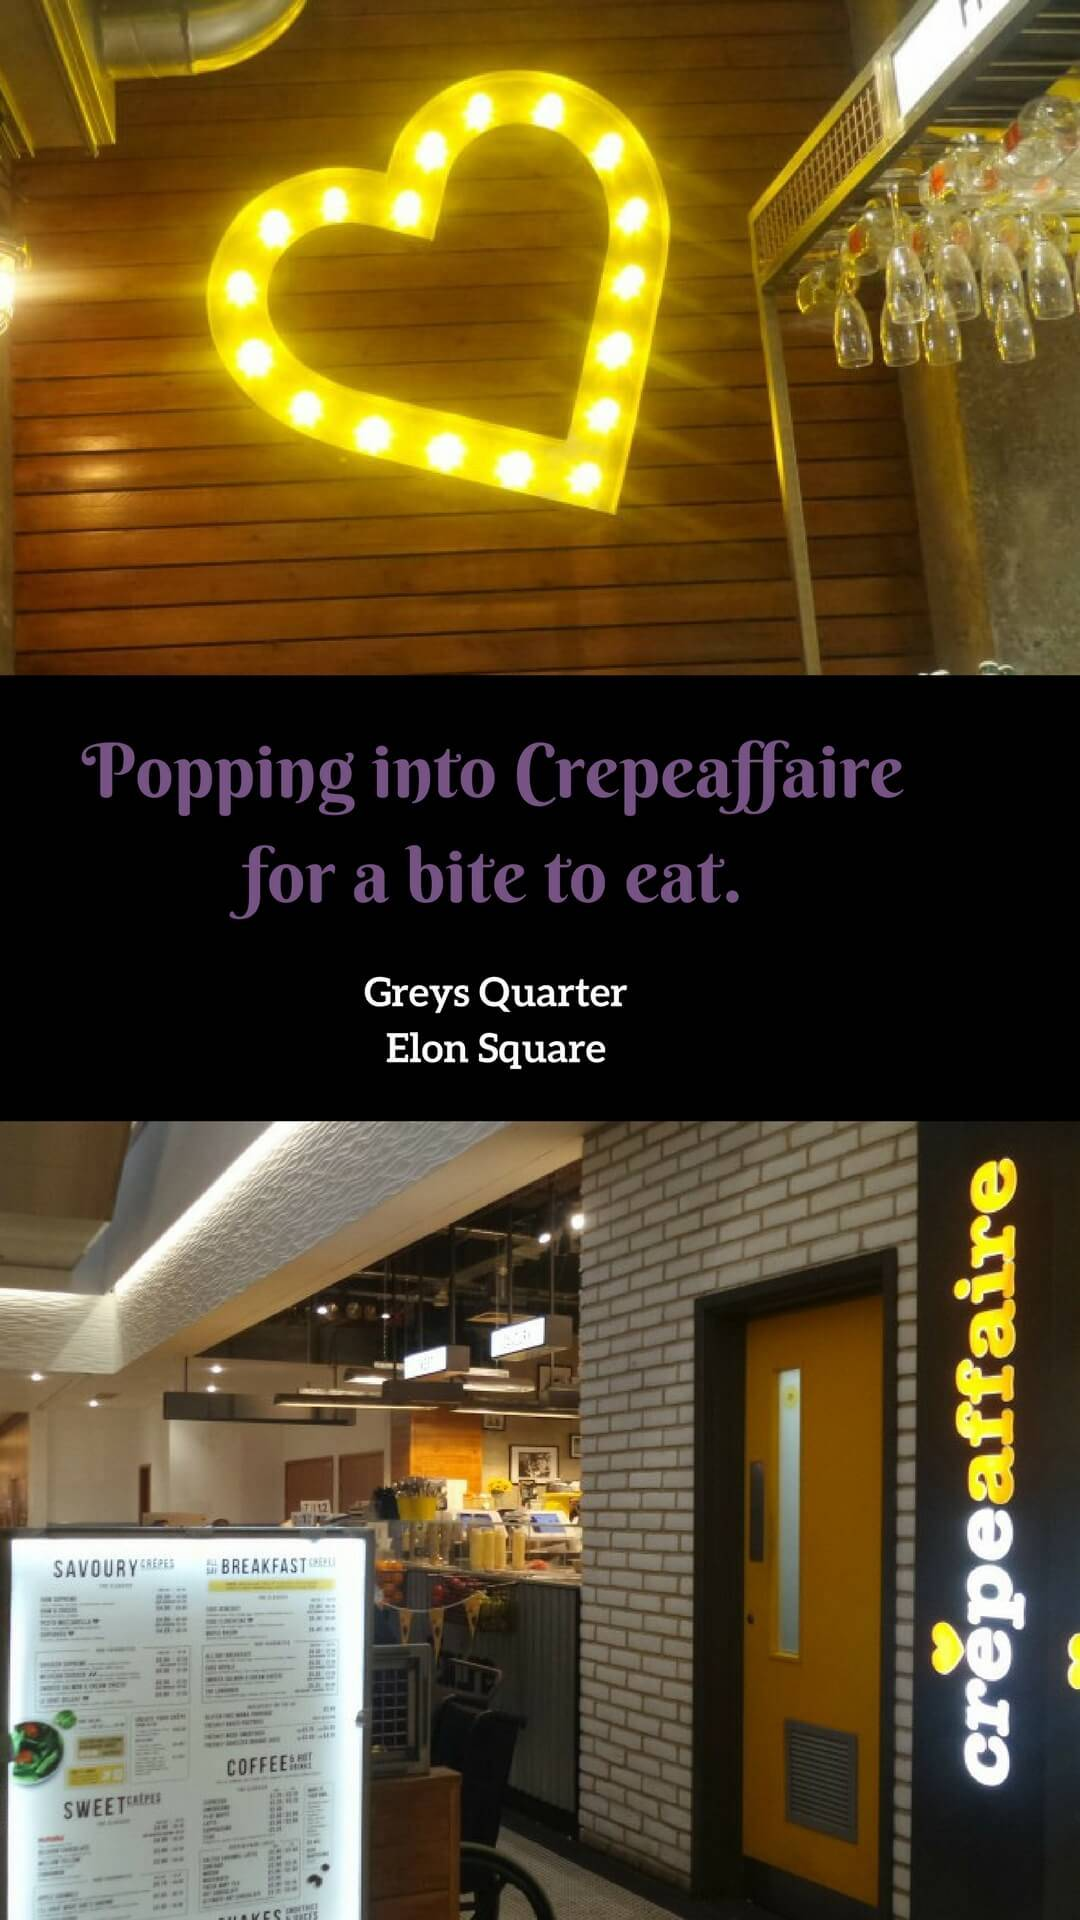 Popping into crepeaffaire Newcastle for a bite to eat. We enjoyed indulgent crepes and milkshakes